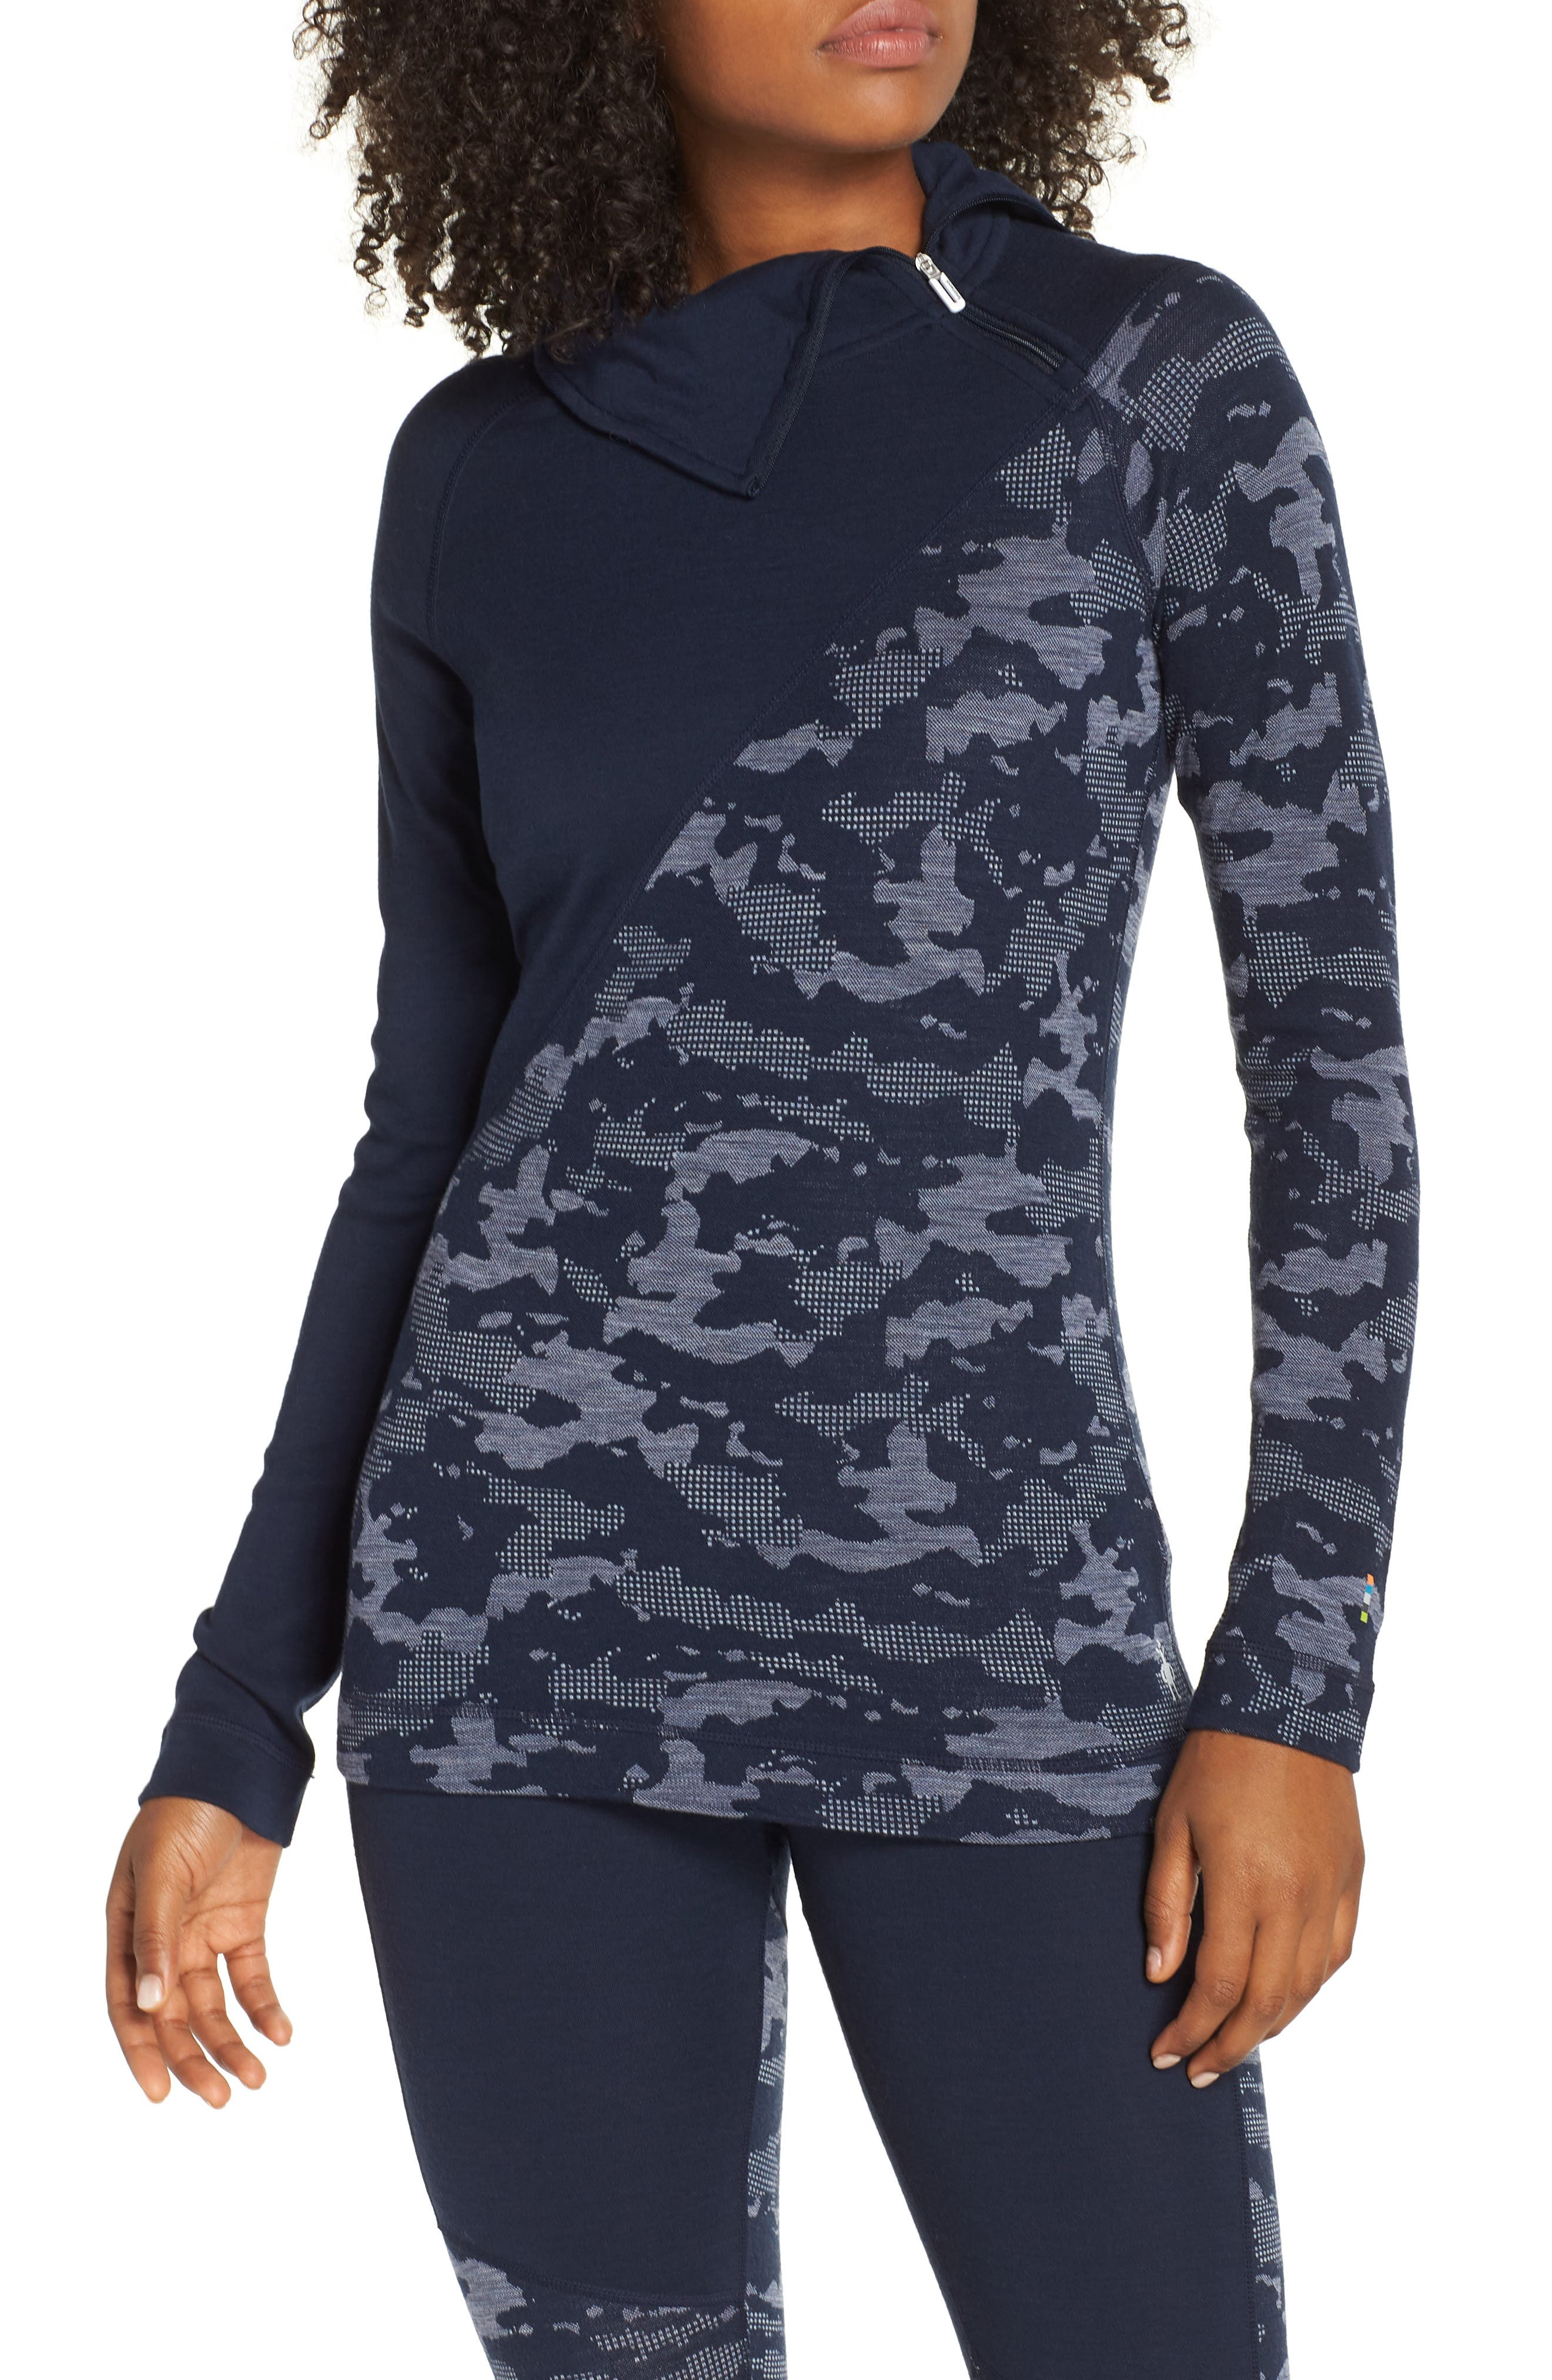 Merino 250 Asymmetrical Zip Top,                         Main,                         color, 410